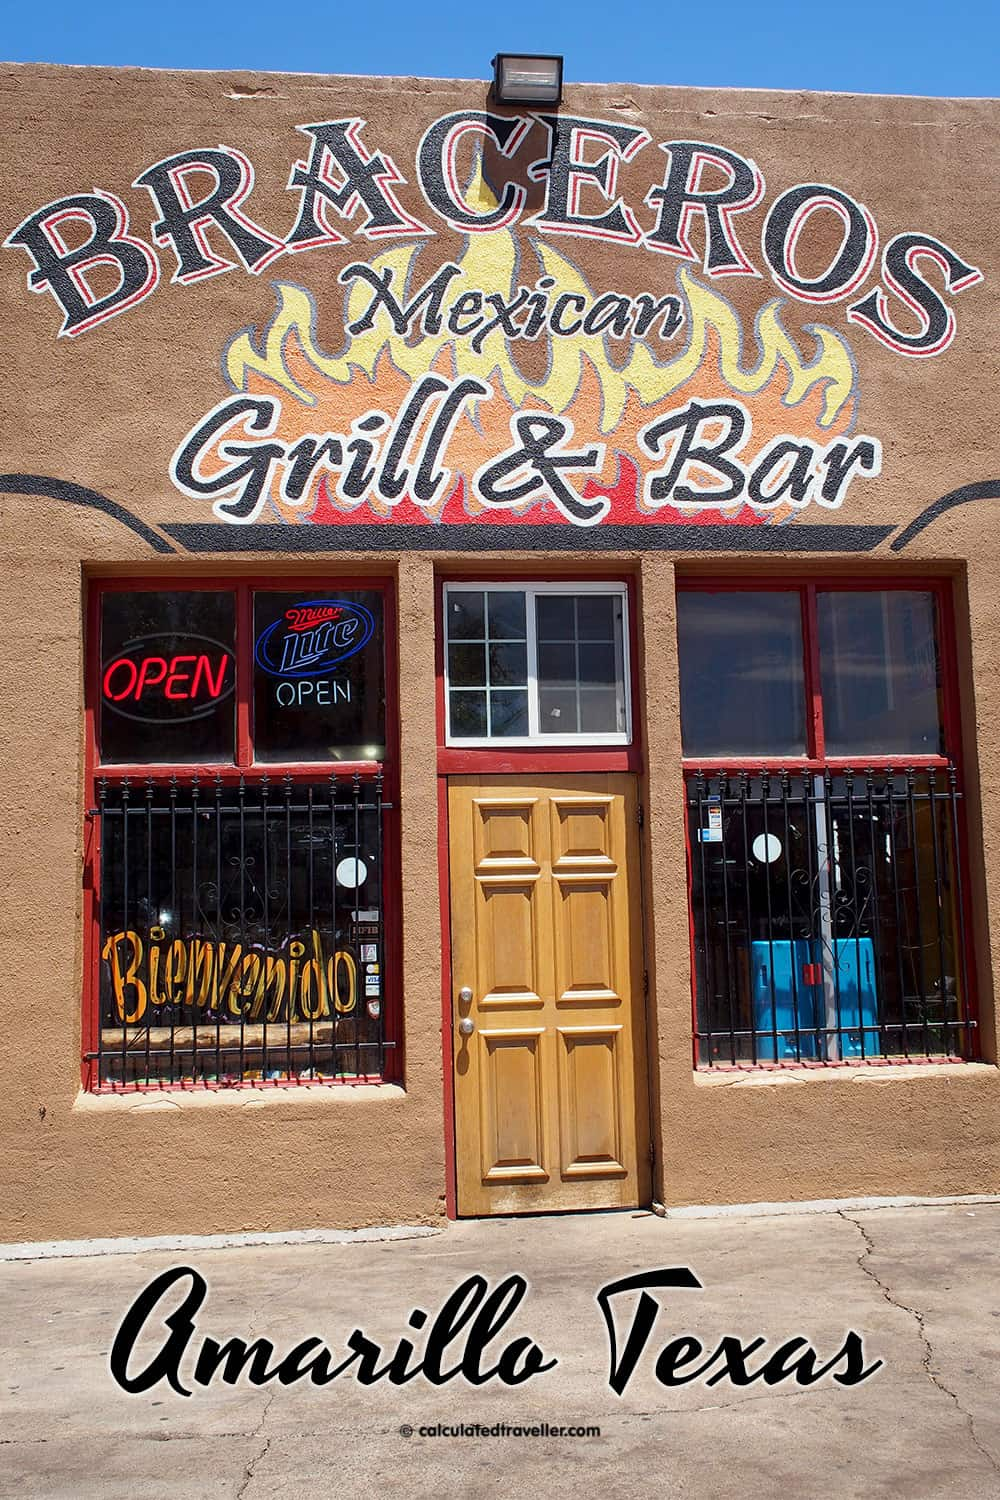 Tex Mex Good Eats at Braceros Mexican Grill and Bar Amarillo Texas. So delicious we ate here twice in one day | #TexMex #Restaurant #Amarillo #Texas #Route66 #USA